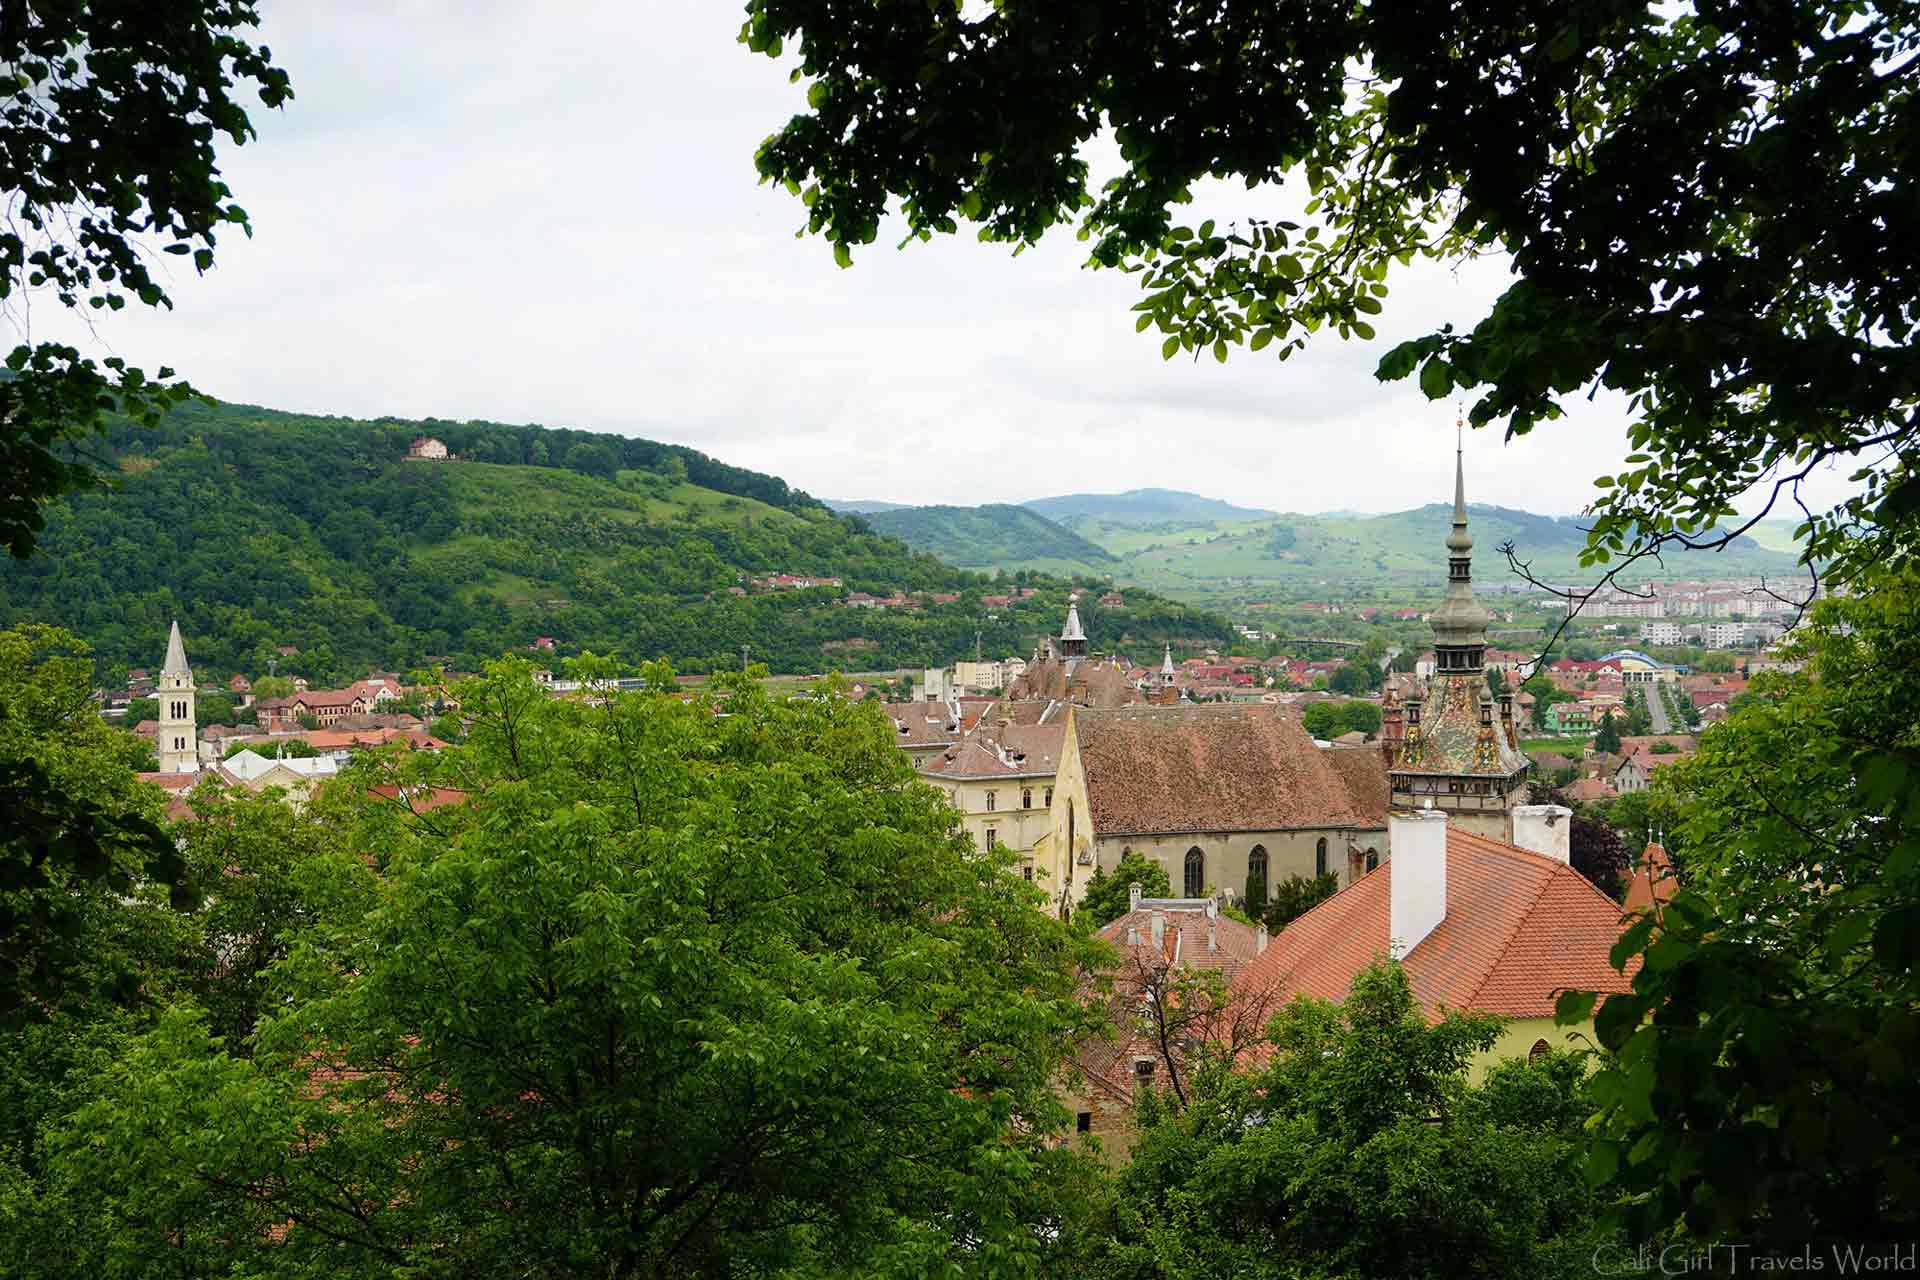 Standing at a view point looking out from the walled citadel of Sighisoara, Transylvania within Romania.